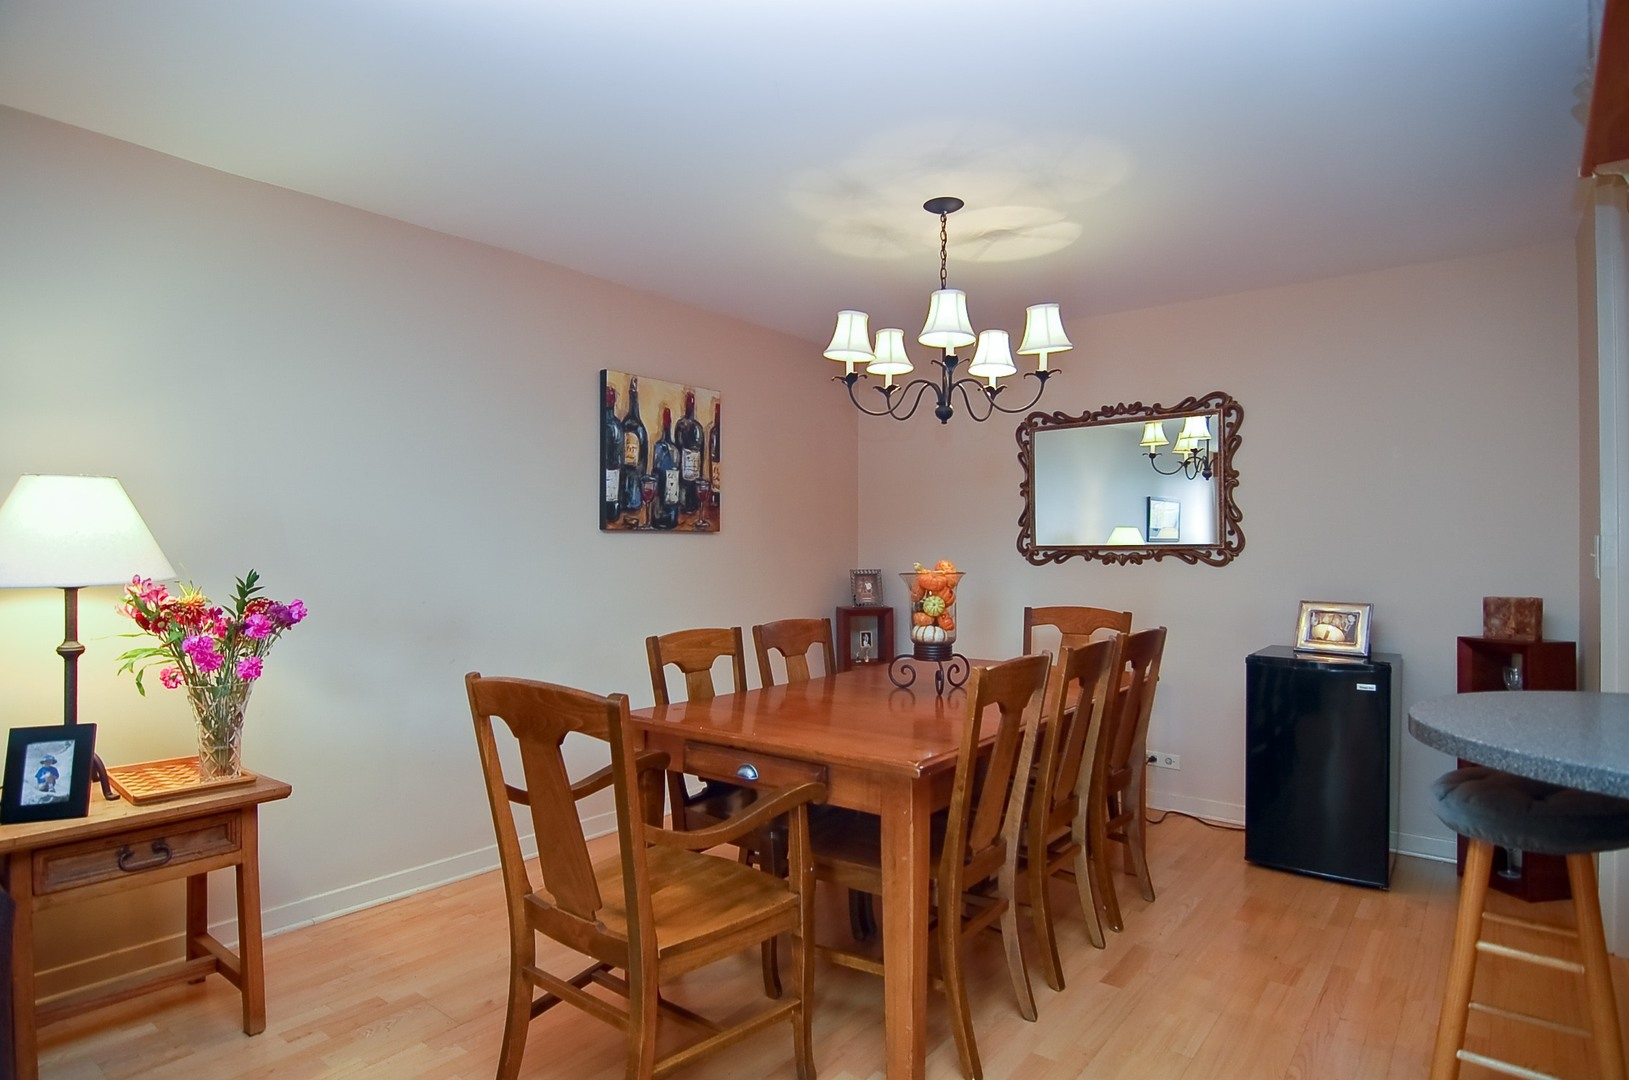 Hd 1497289698835 06 2626nlakeview unit301 2 diningroom hires